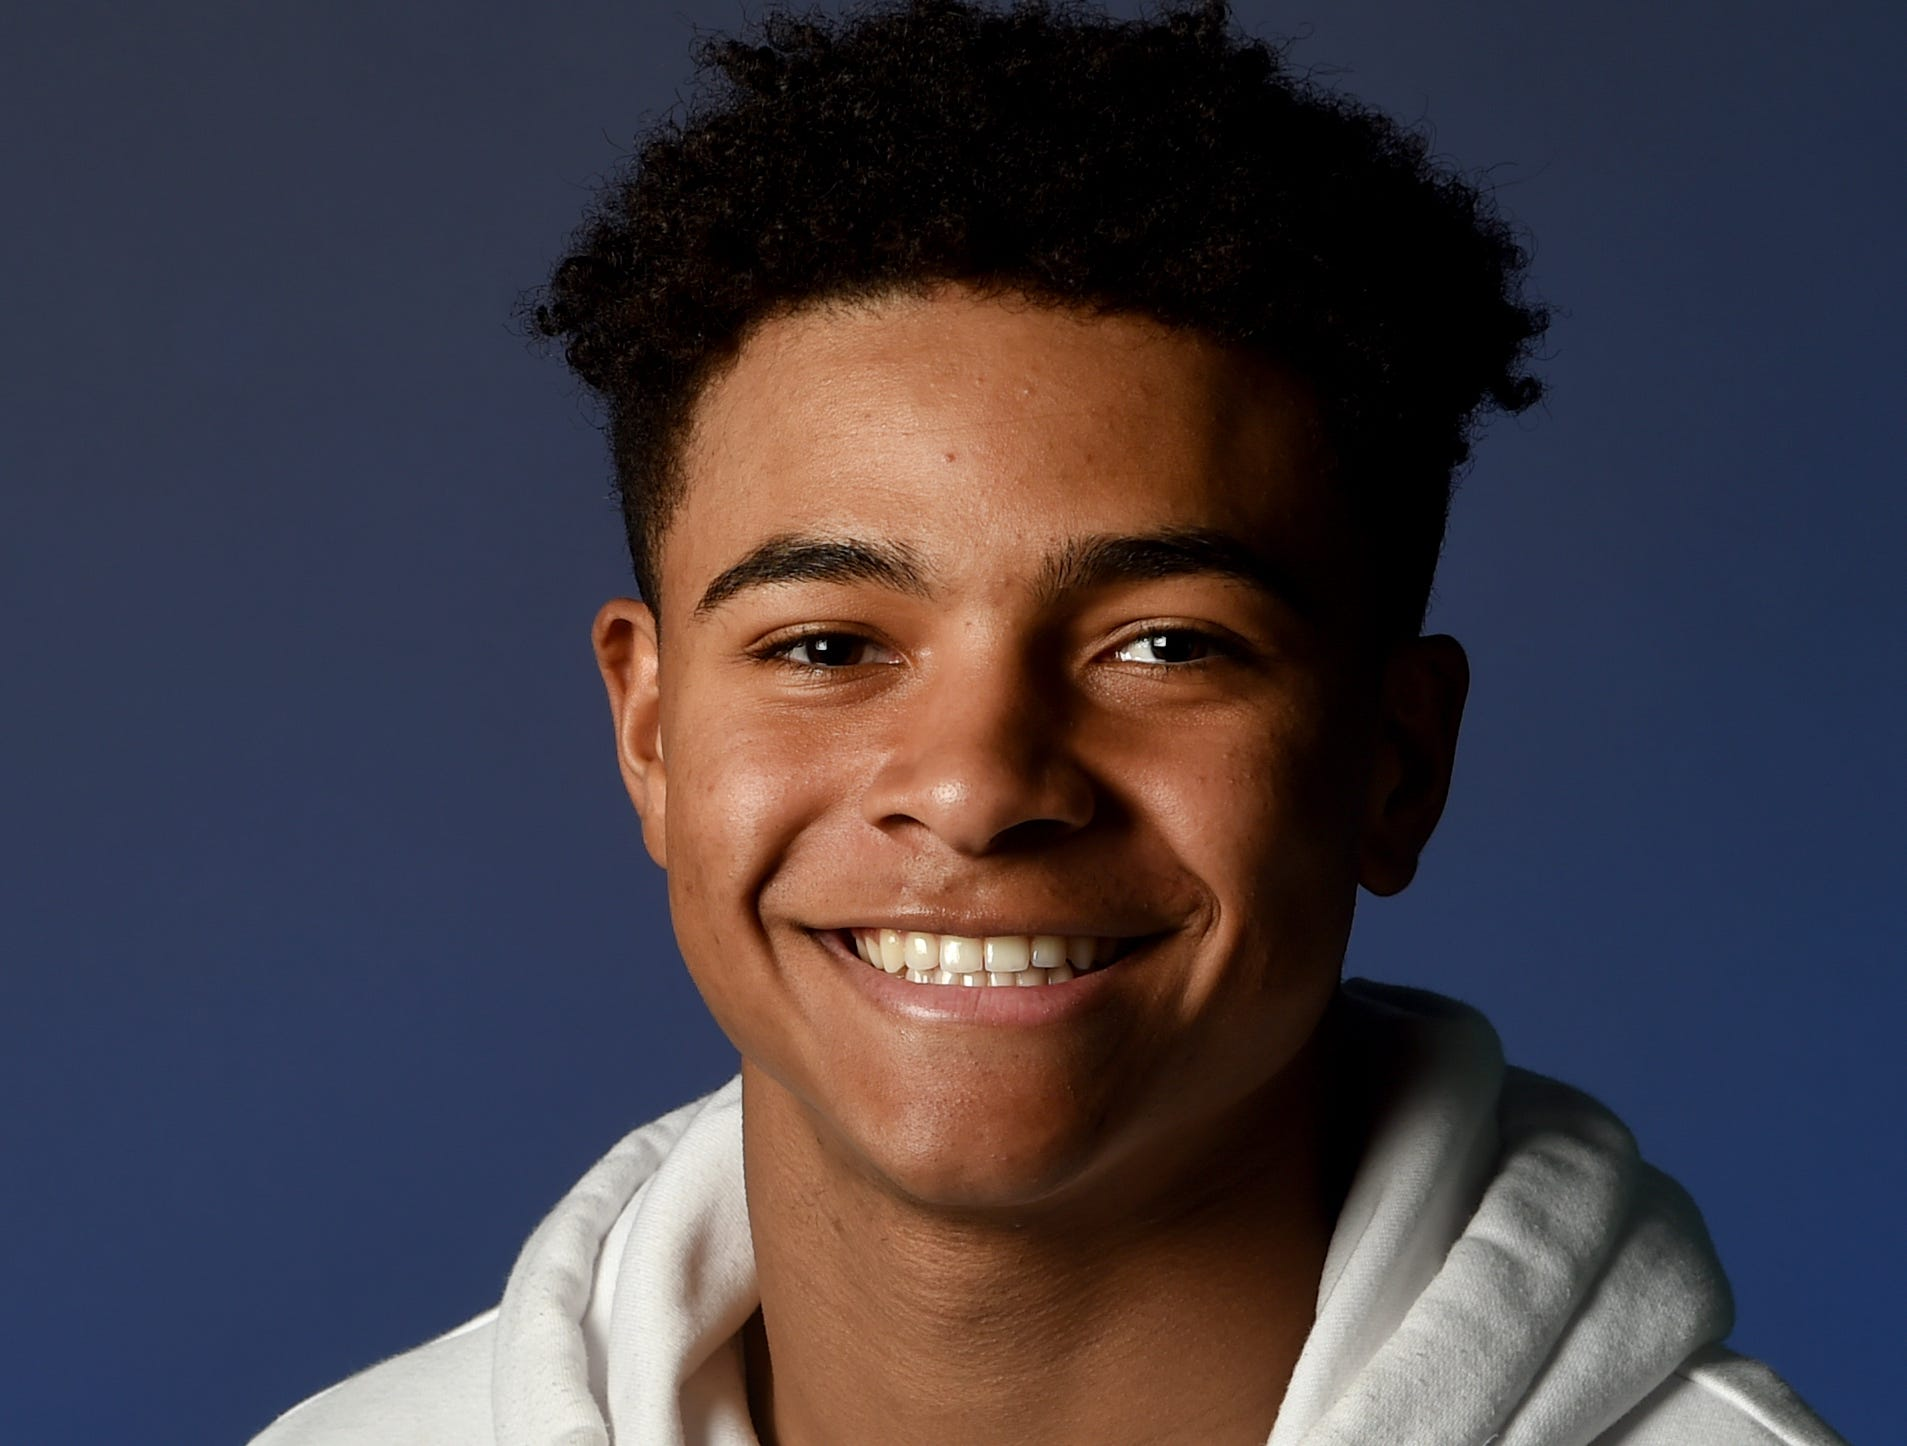 BRYCE HOWARD, Westlake: Already among the region's smoothest and most gifted point guards, Howard is now Westlake's all-time assists leader. He earned that distinction with 156 assists as a senior and 508 in his career. The 6-foot-1 Howard averaged 14.5 points and 6.0 assists and set a team record with 11 steals in a game. He's a first-team member of the All-Marmonte League and coaches all-county teams who owns a 4.2 GPA. He lists working out, shooting hoops, hanging out with his girlfriend and playing video games with friends as hobbies. His favorite food is steak, his favorite athlete is LeBron James and his favorite singer is Drake.